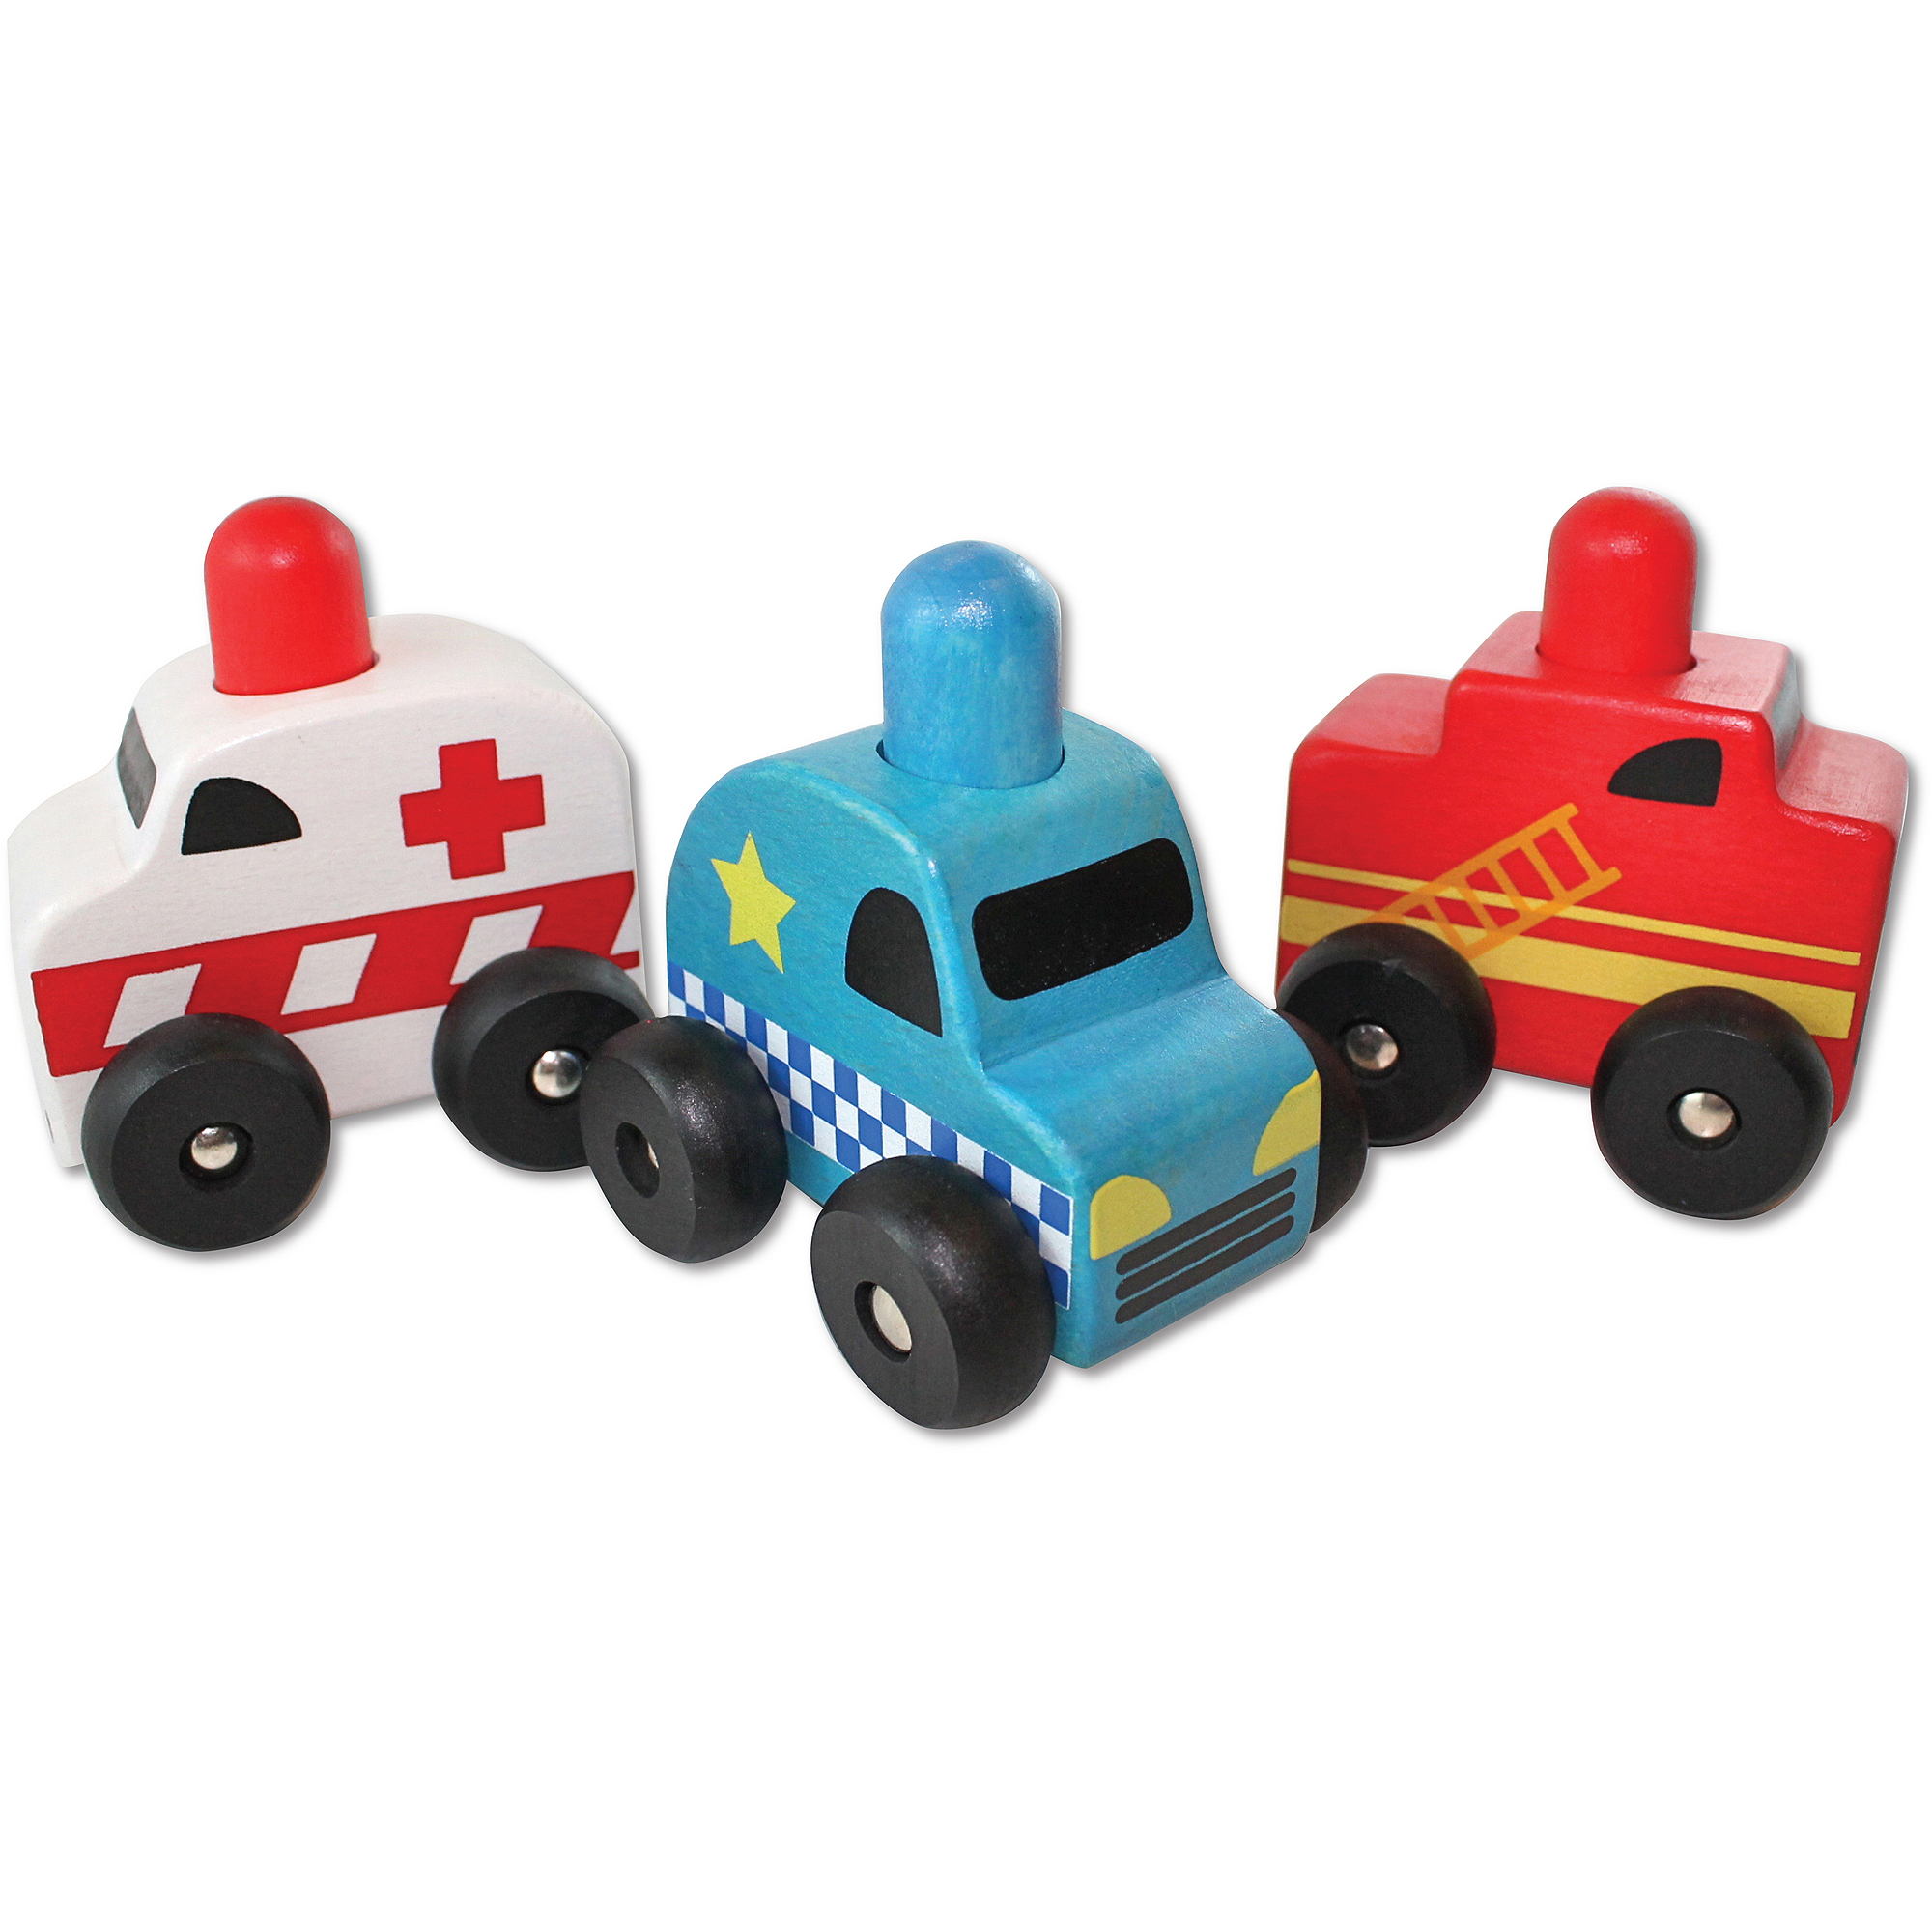 Discoveroo Squeaker Emergency Toy Cars